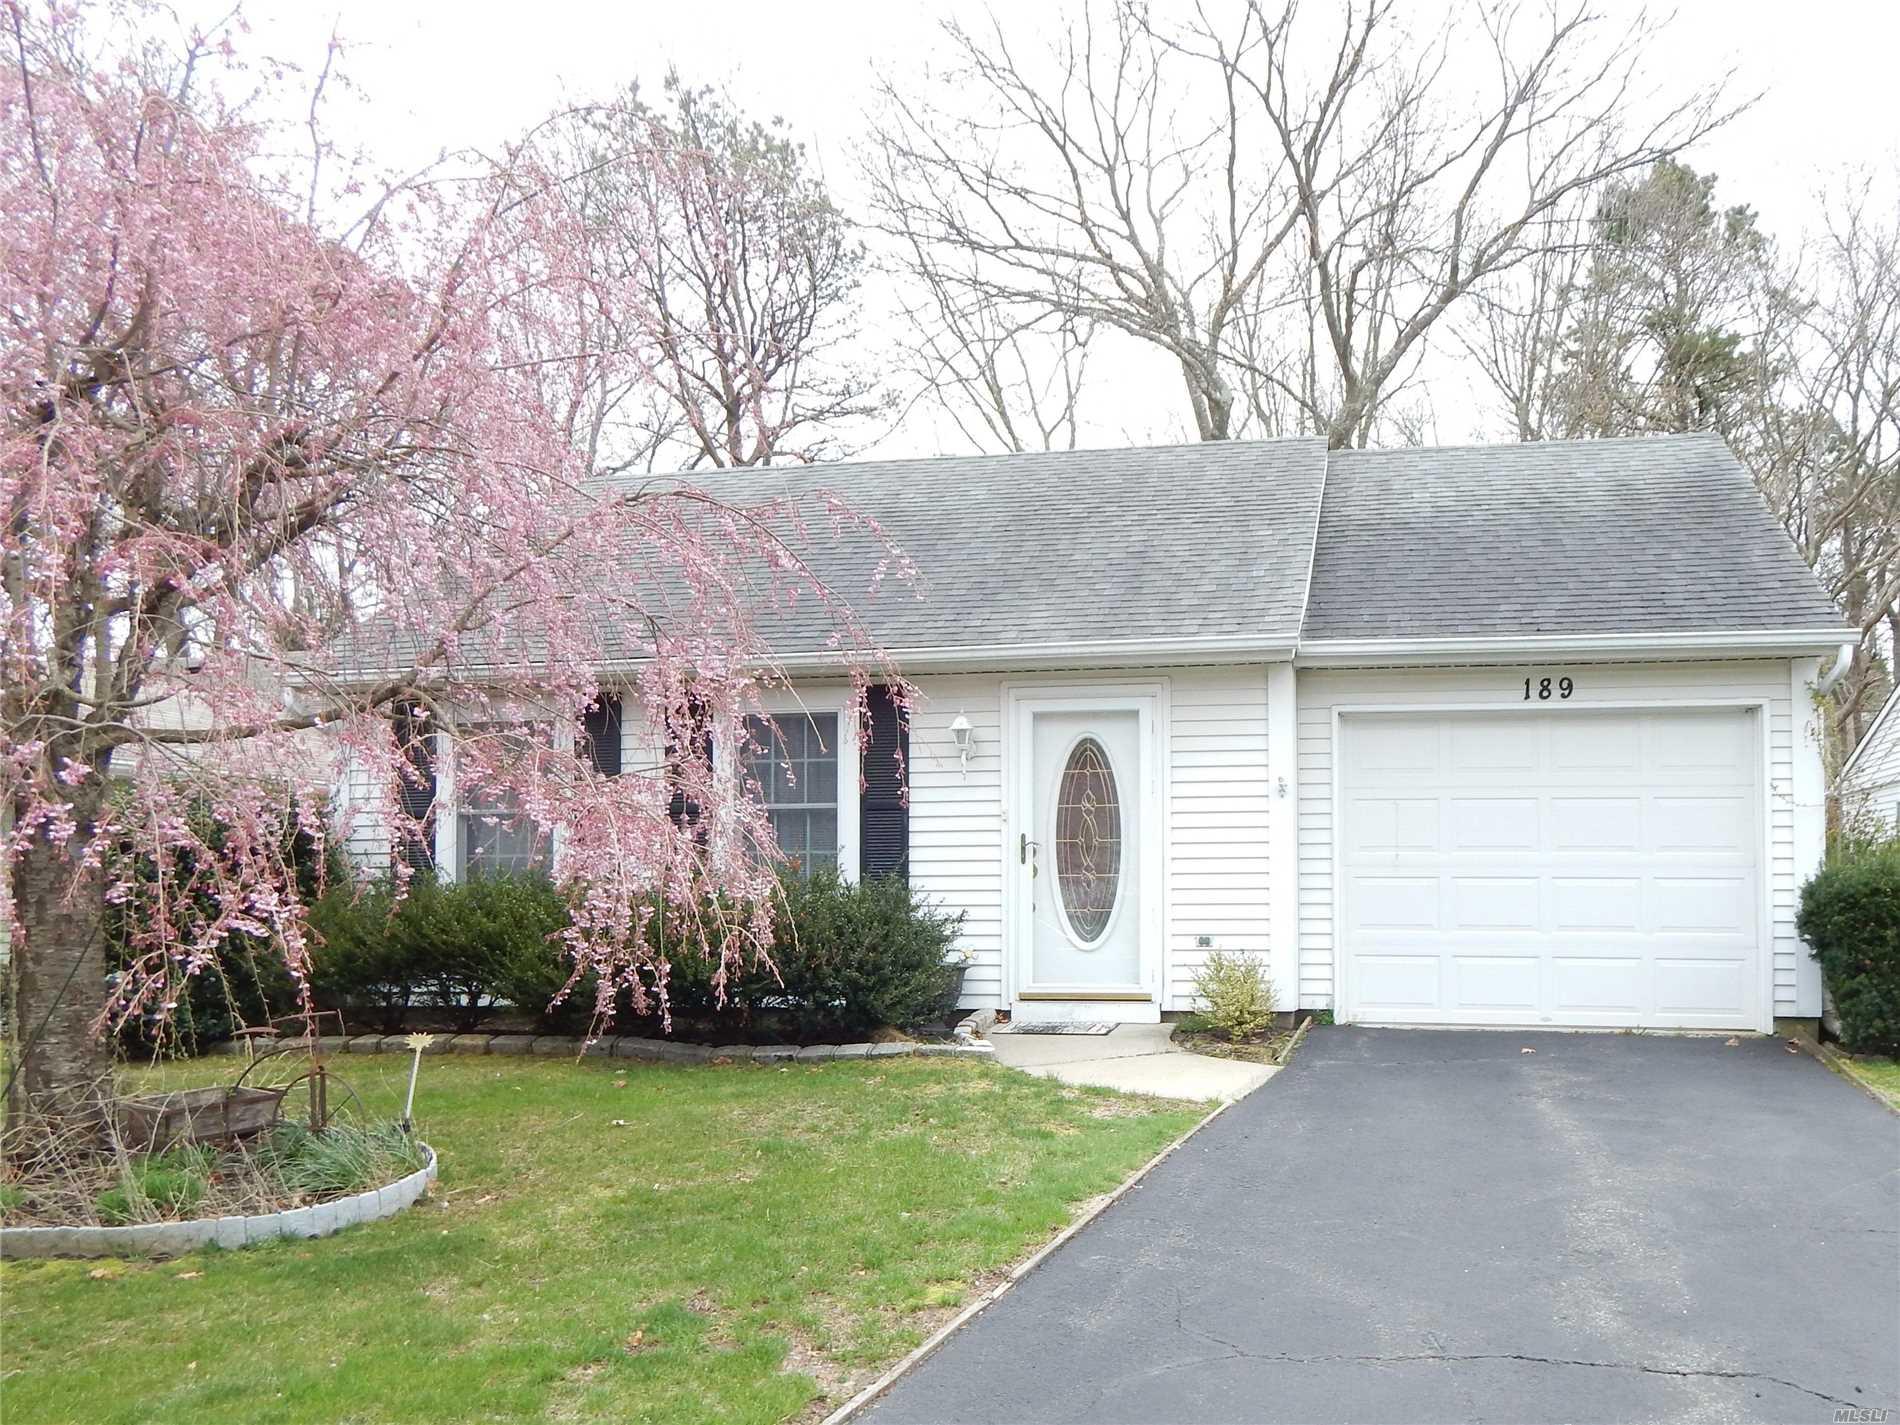 Beautiful two bedroom one bath home in pristine condition with a lovely light and bright sunroom overlooking a private backyard. Central Air installed 2009 and Hot Water heater installed 2014. Come see what may be your new home.